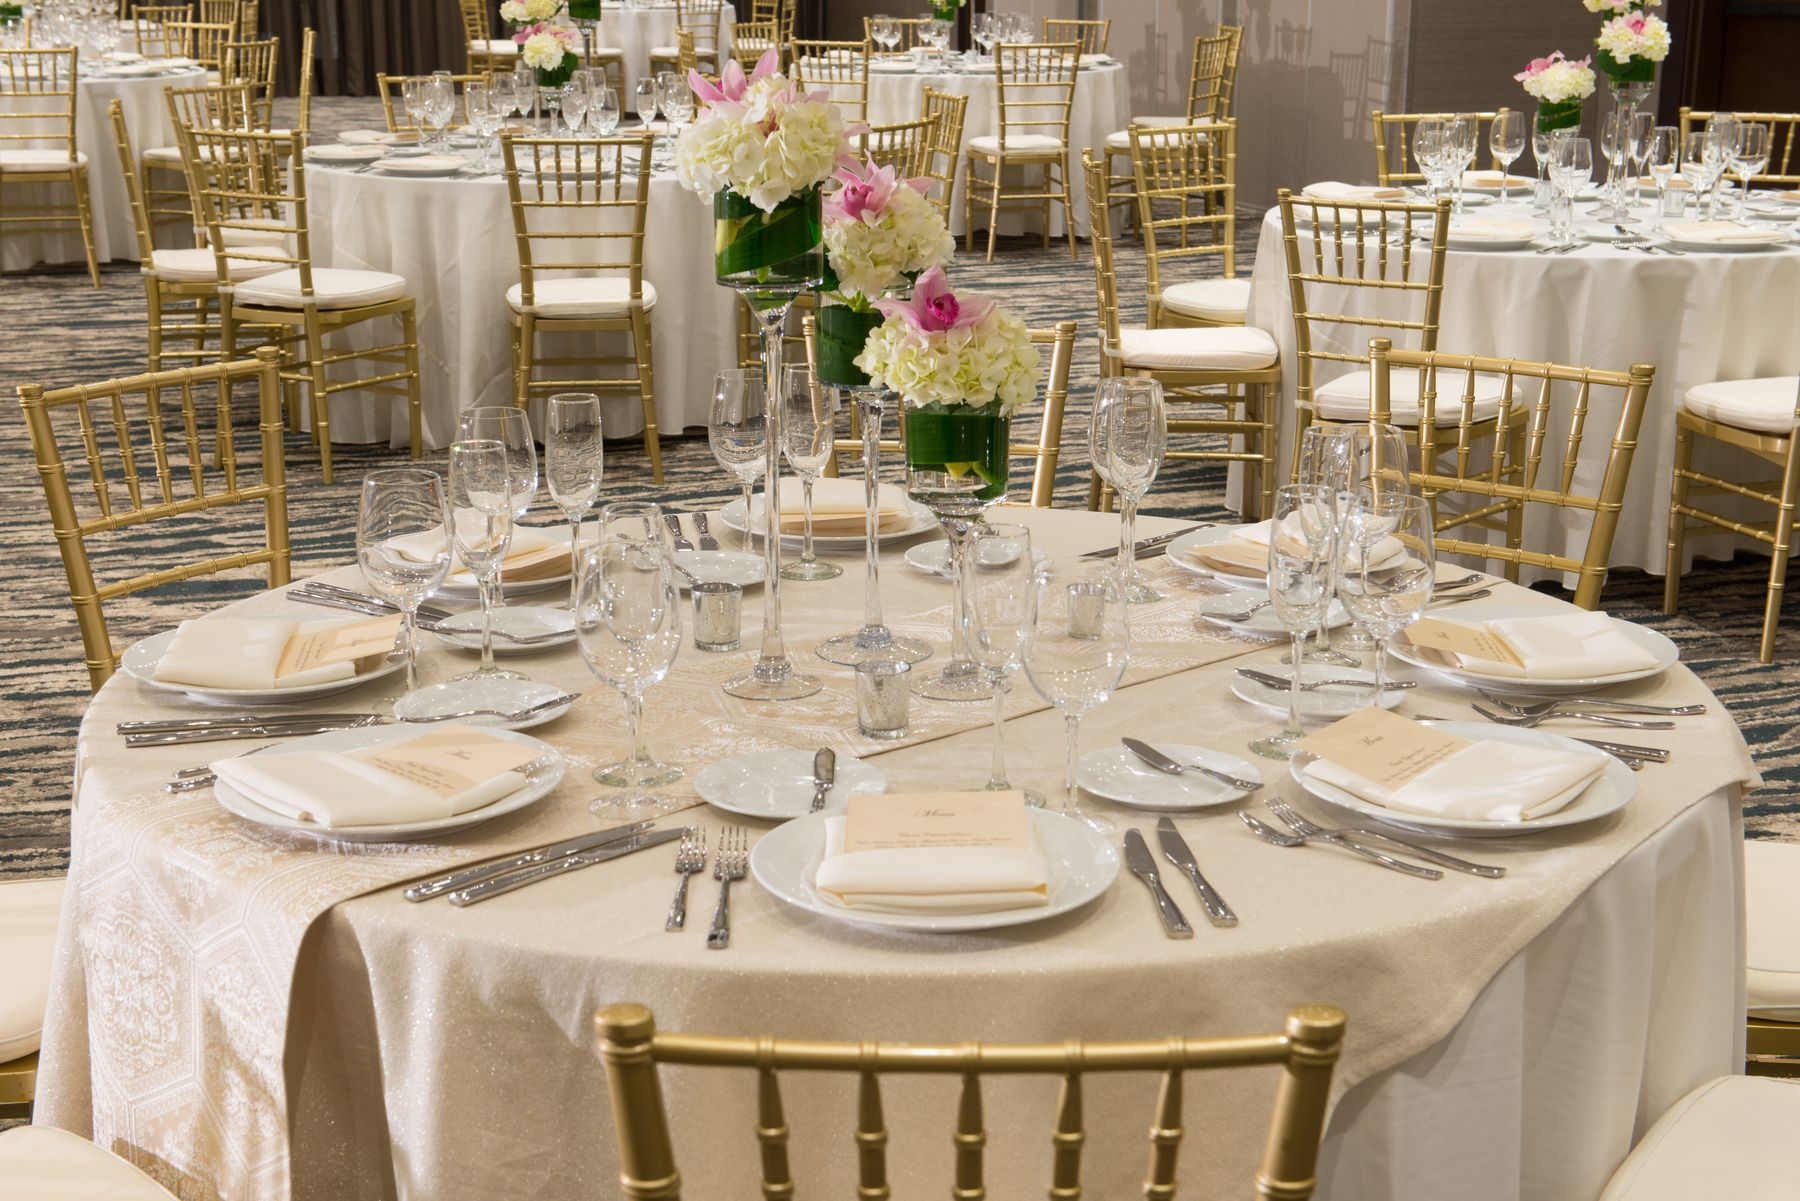 Banquet rounds set with floral centerpieces